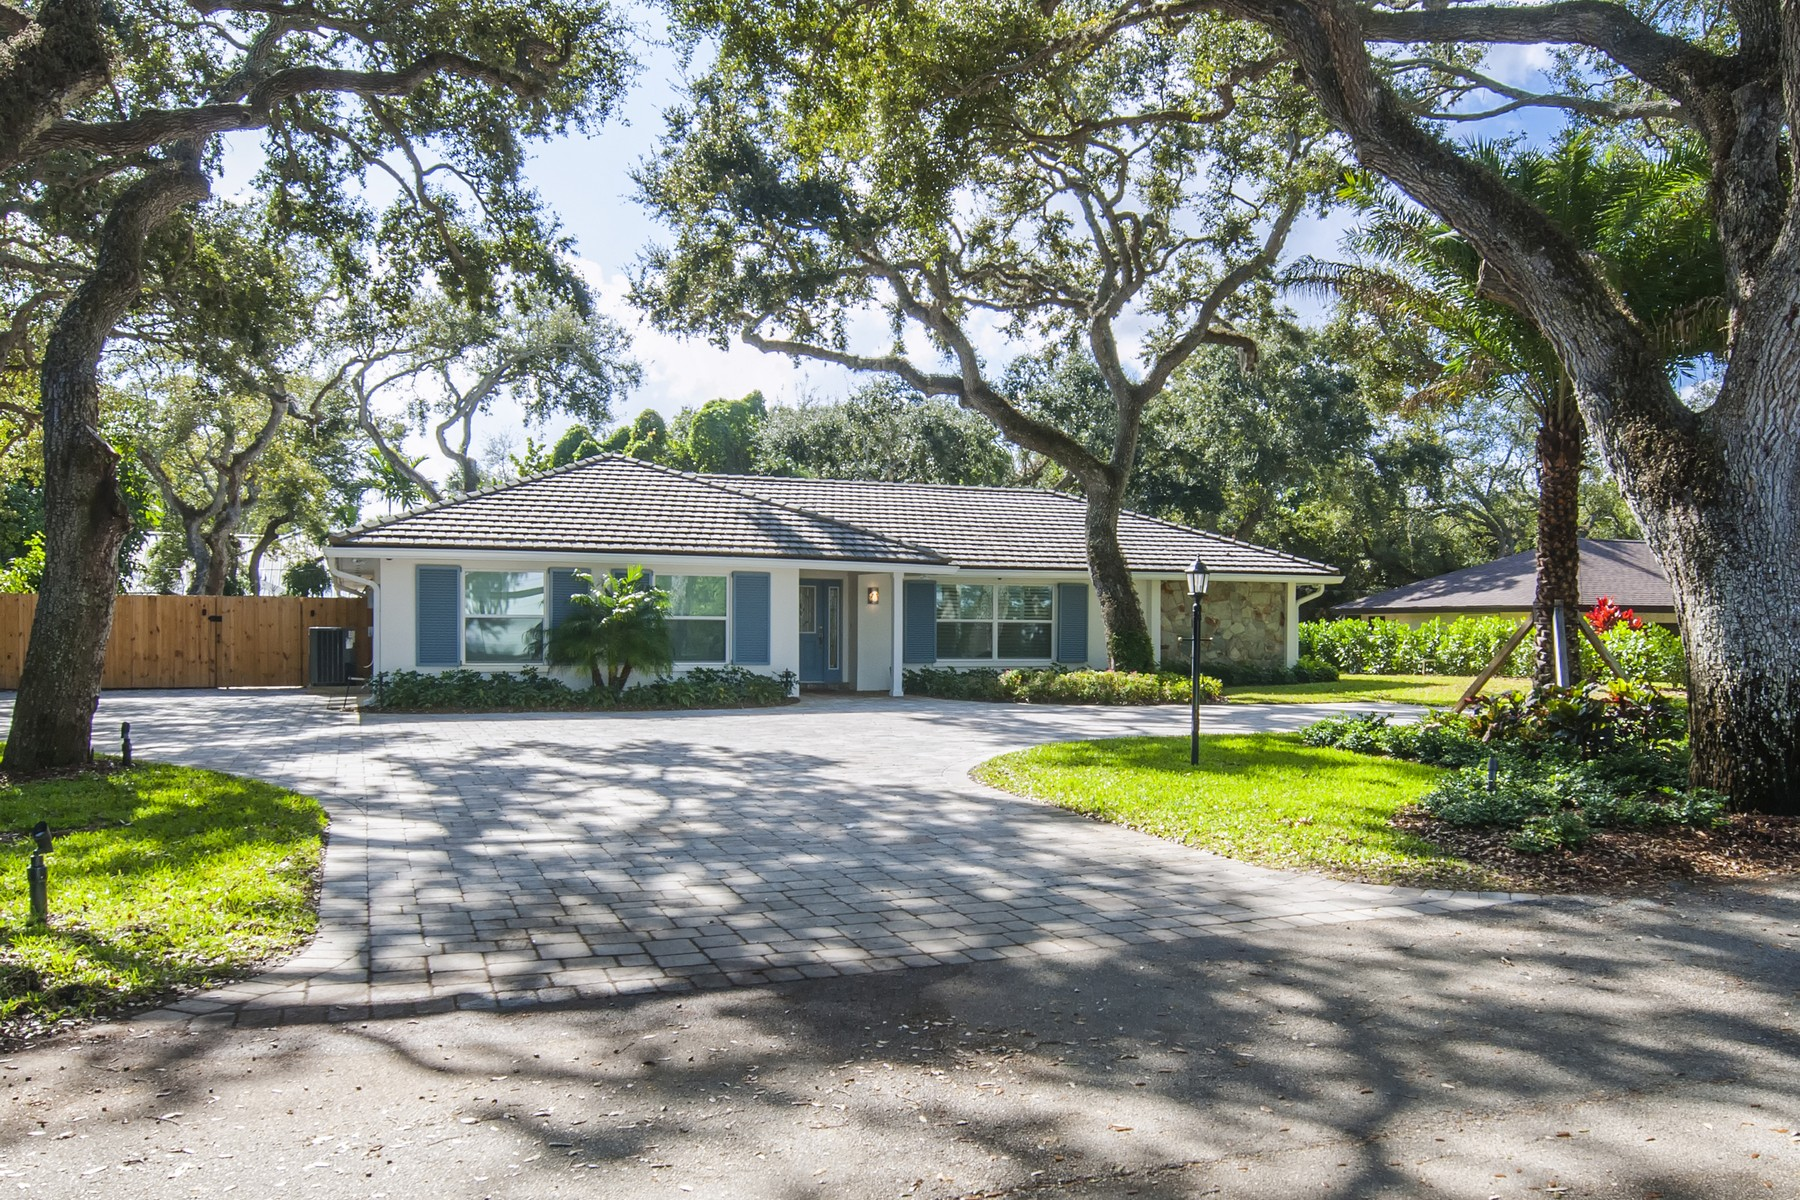 Single Family Homes for Sale at Impeccably Redone Pool Home East of A1A 1491 Smugglers Cove Vero Beach, Florida 32962 United States